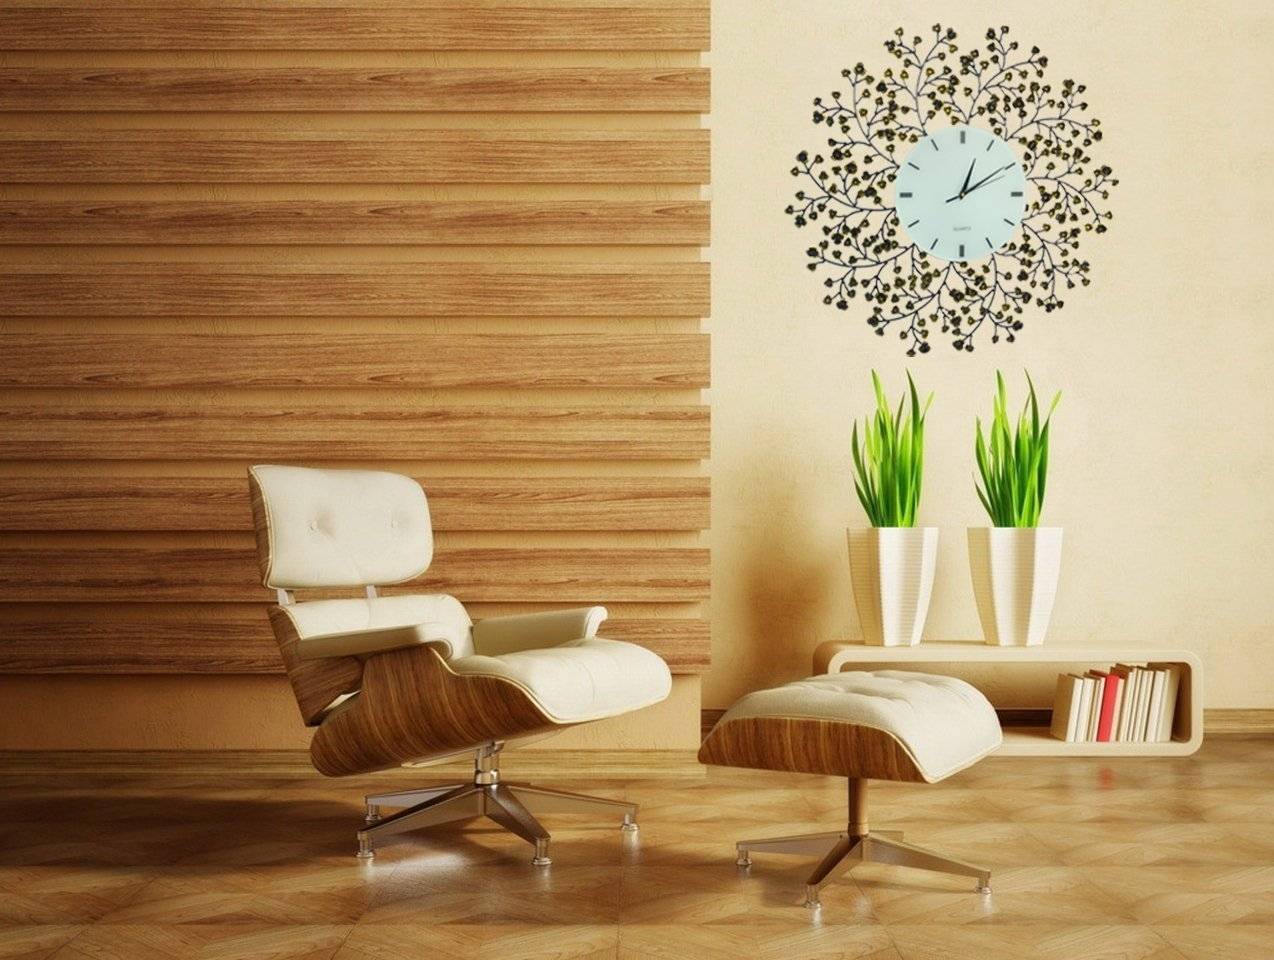 20 unique decorative wall clocks